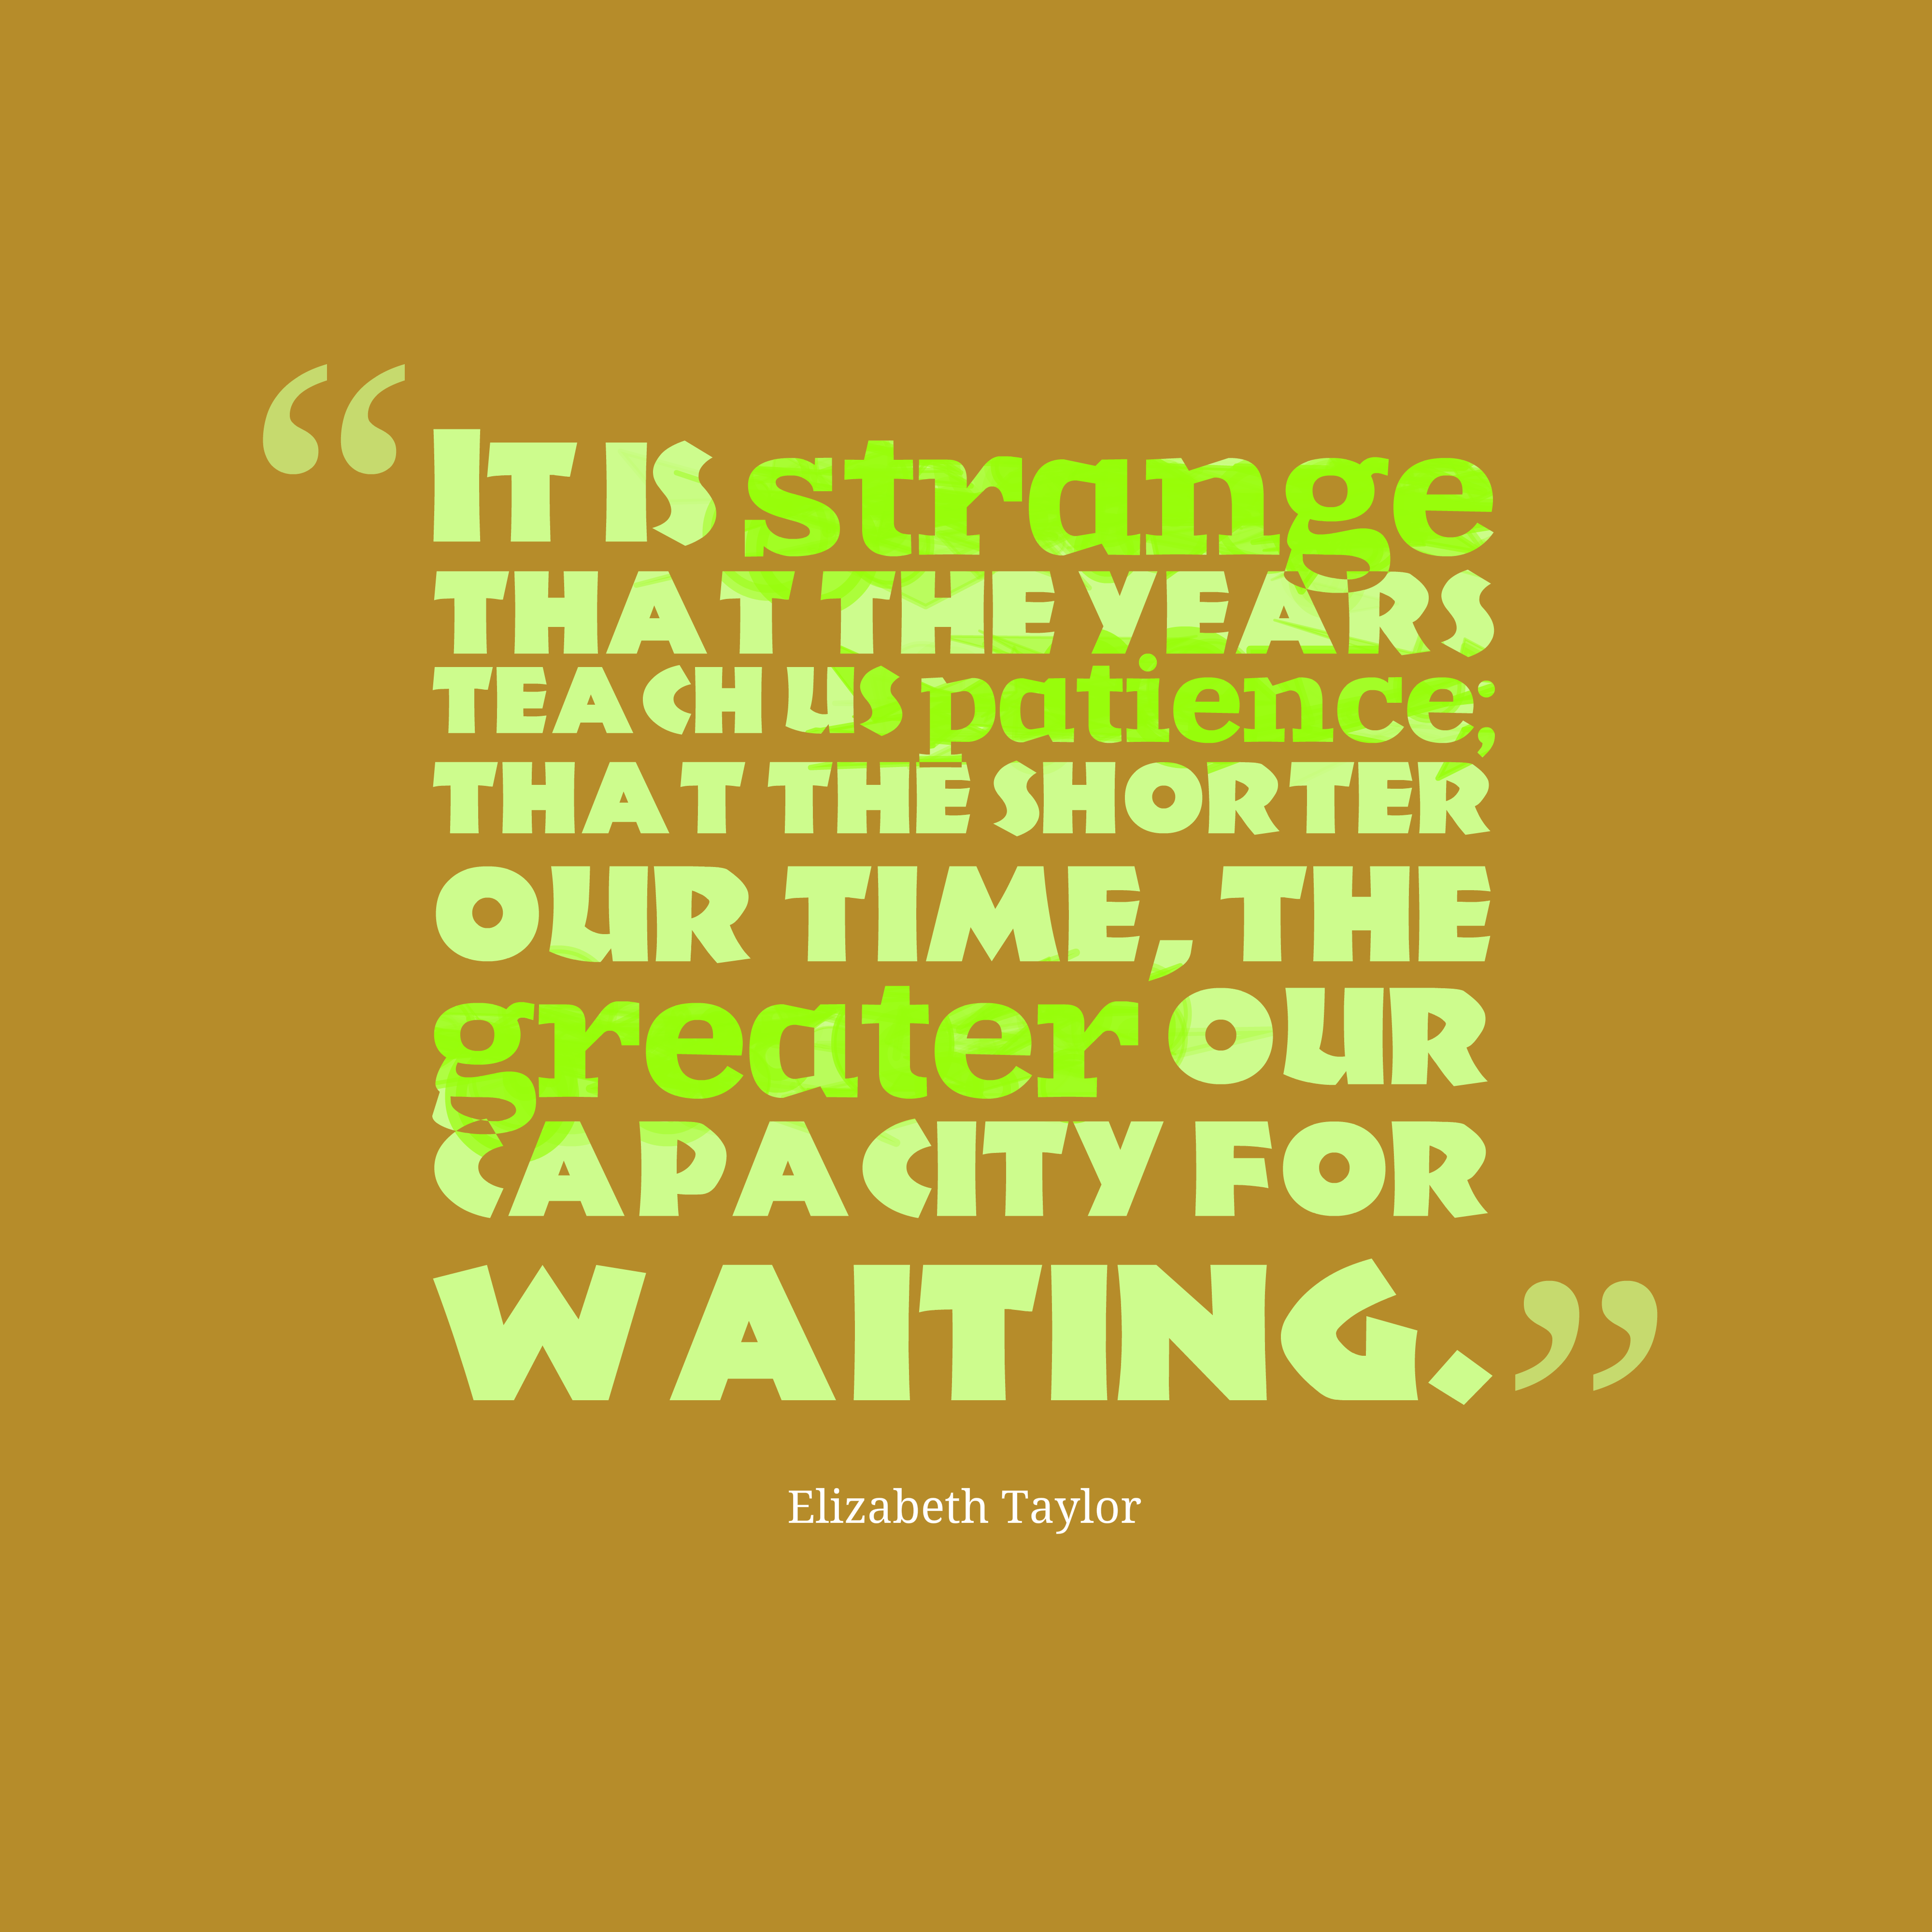 Quotes image of It is strange that the years teach us patience; that the shorter our time, the greater our capacity for waiting.